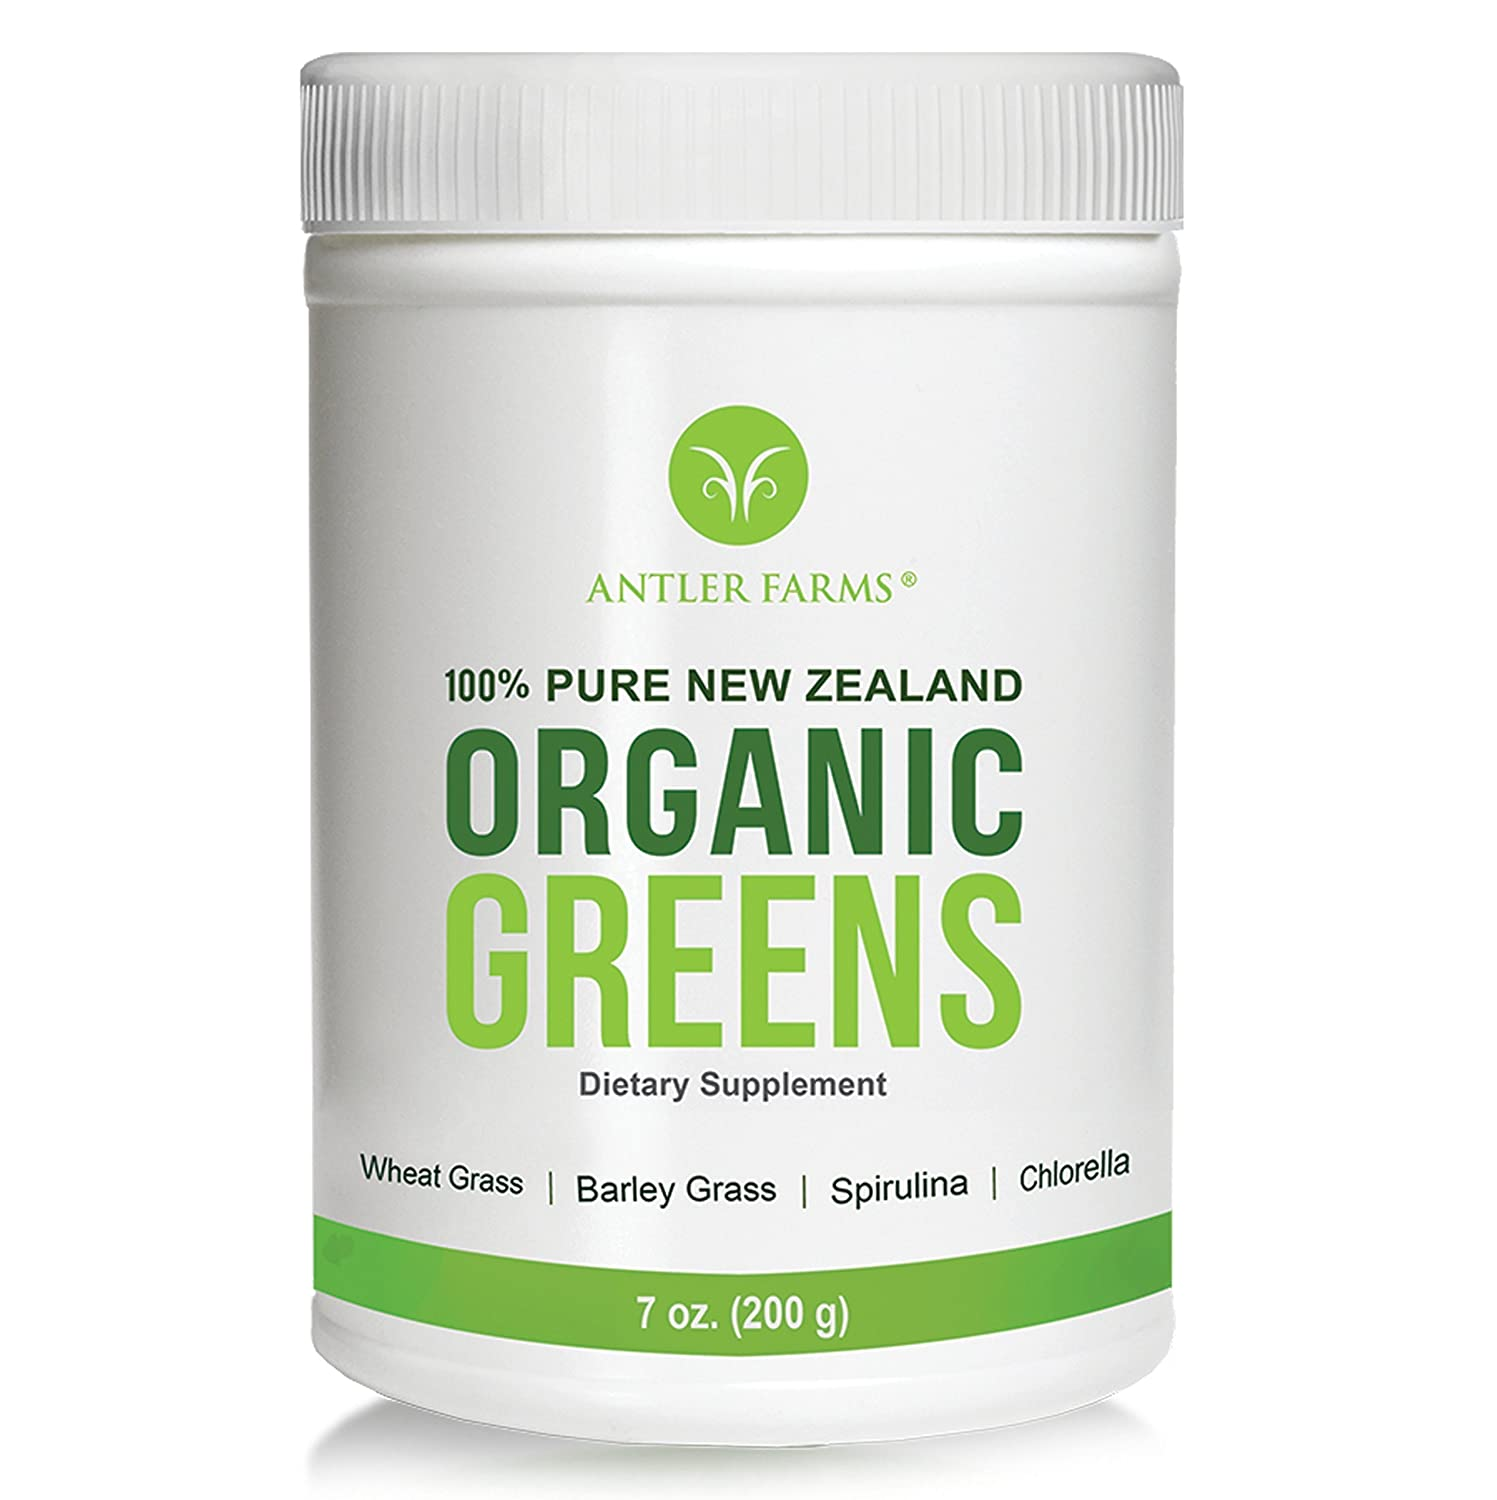 Antler Farms - 100% Pure New Zealand Organic Greens Superfood Powder, 50 Servings, 200g - Wheat Grass, Barley Grass, Chlorella, Spirulina - Vegan, Gluten Free, NO Pesticides, NO Chemicals, NO GMOs